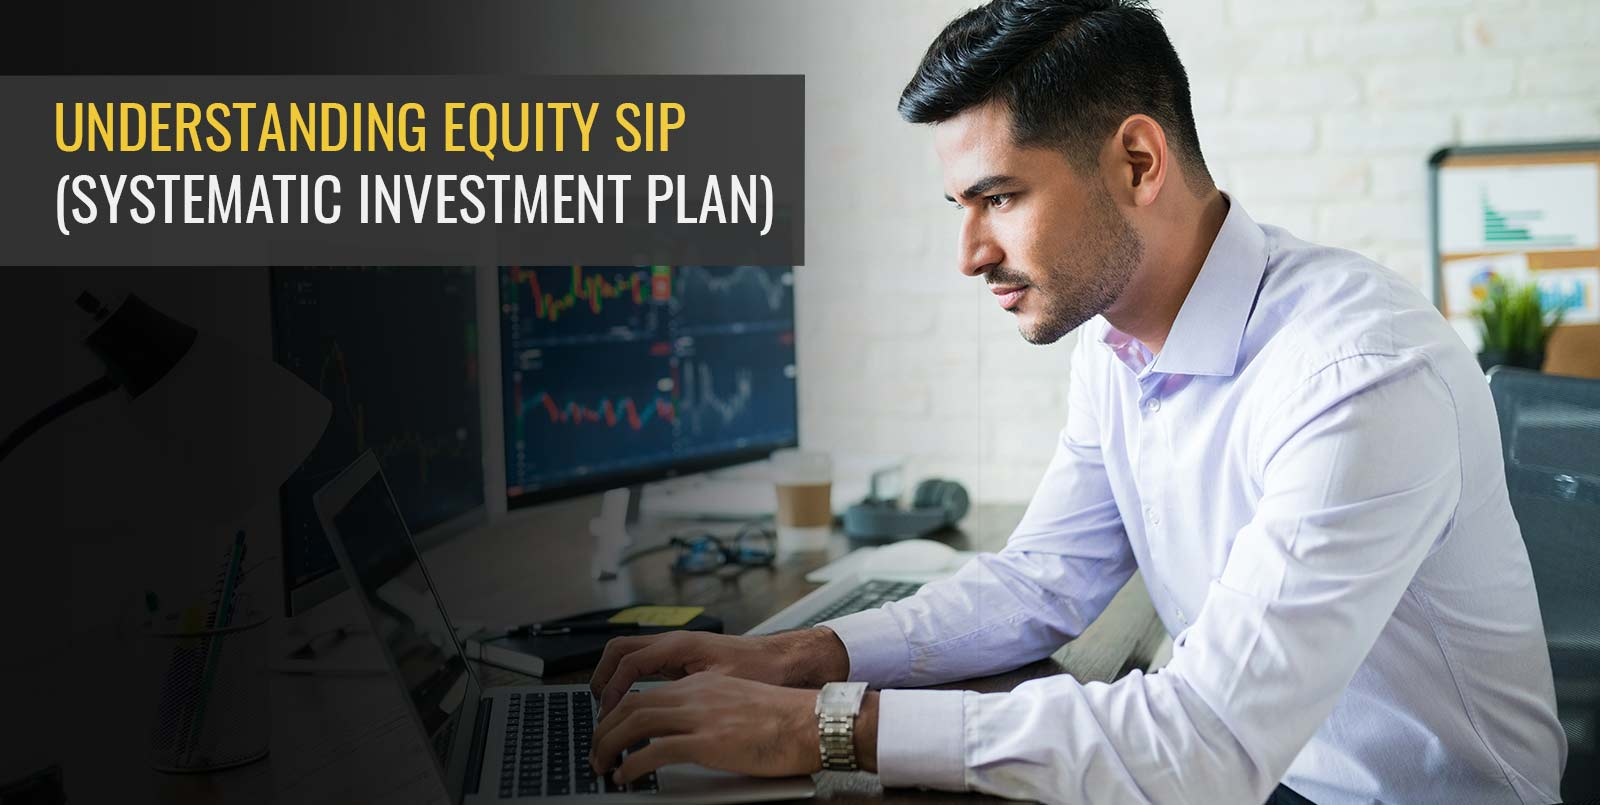 UNDERSTANDING EQUITY SIP (SYSTEMATIC INVESTMENT PLAN)